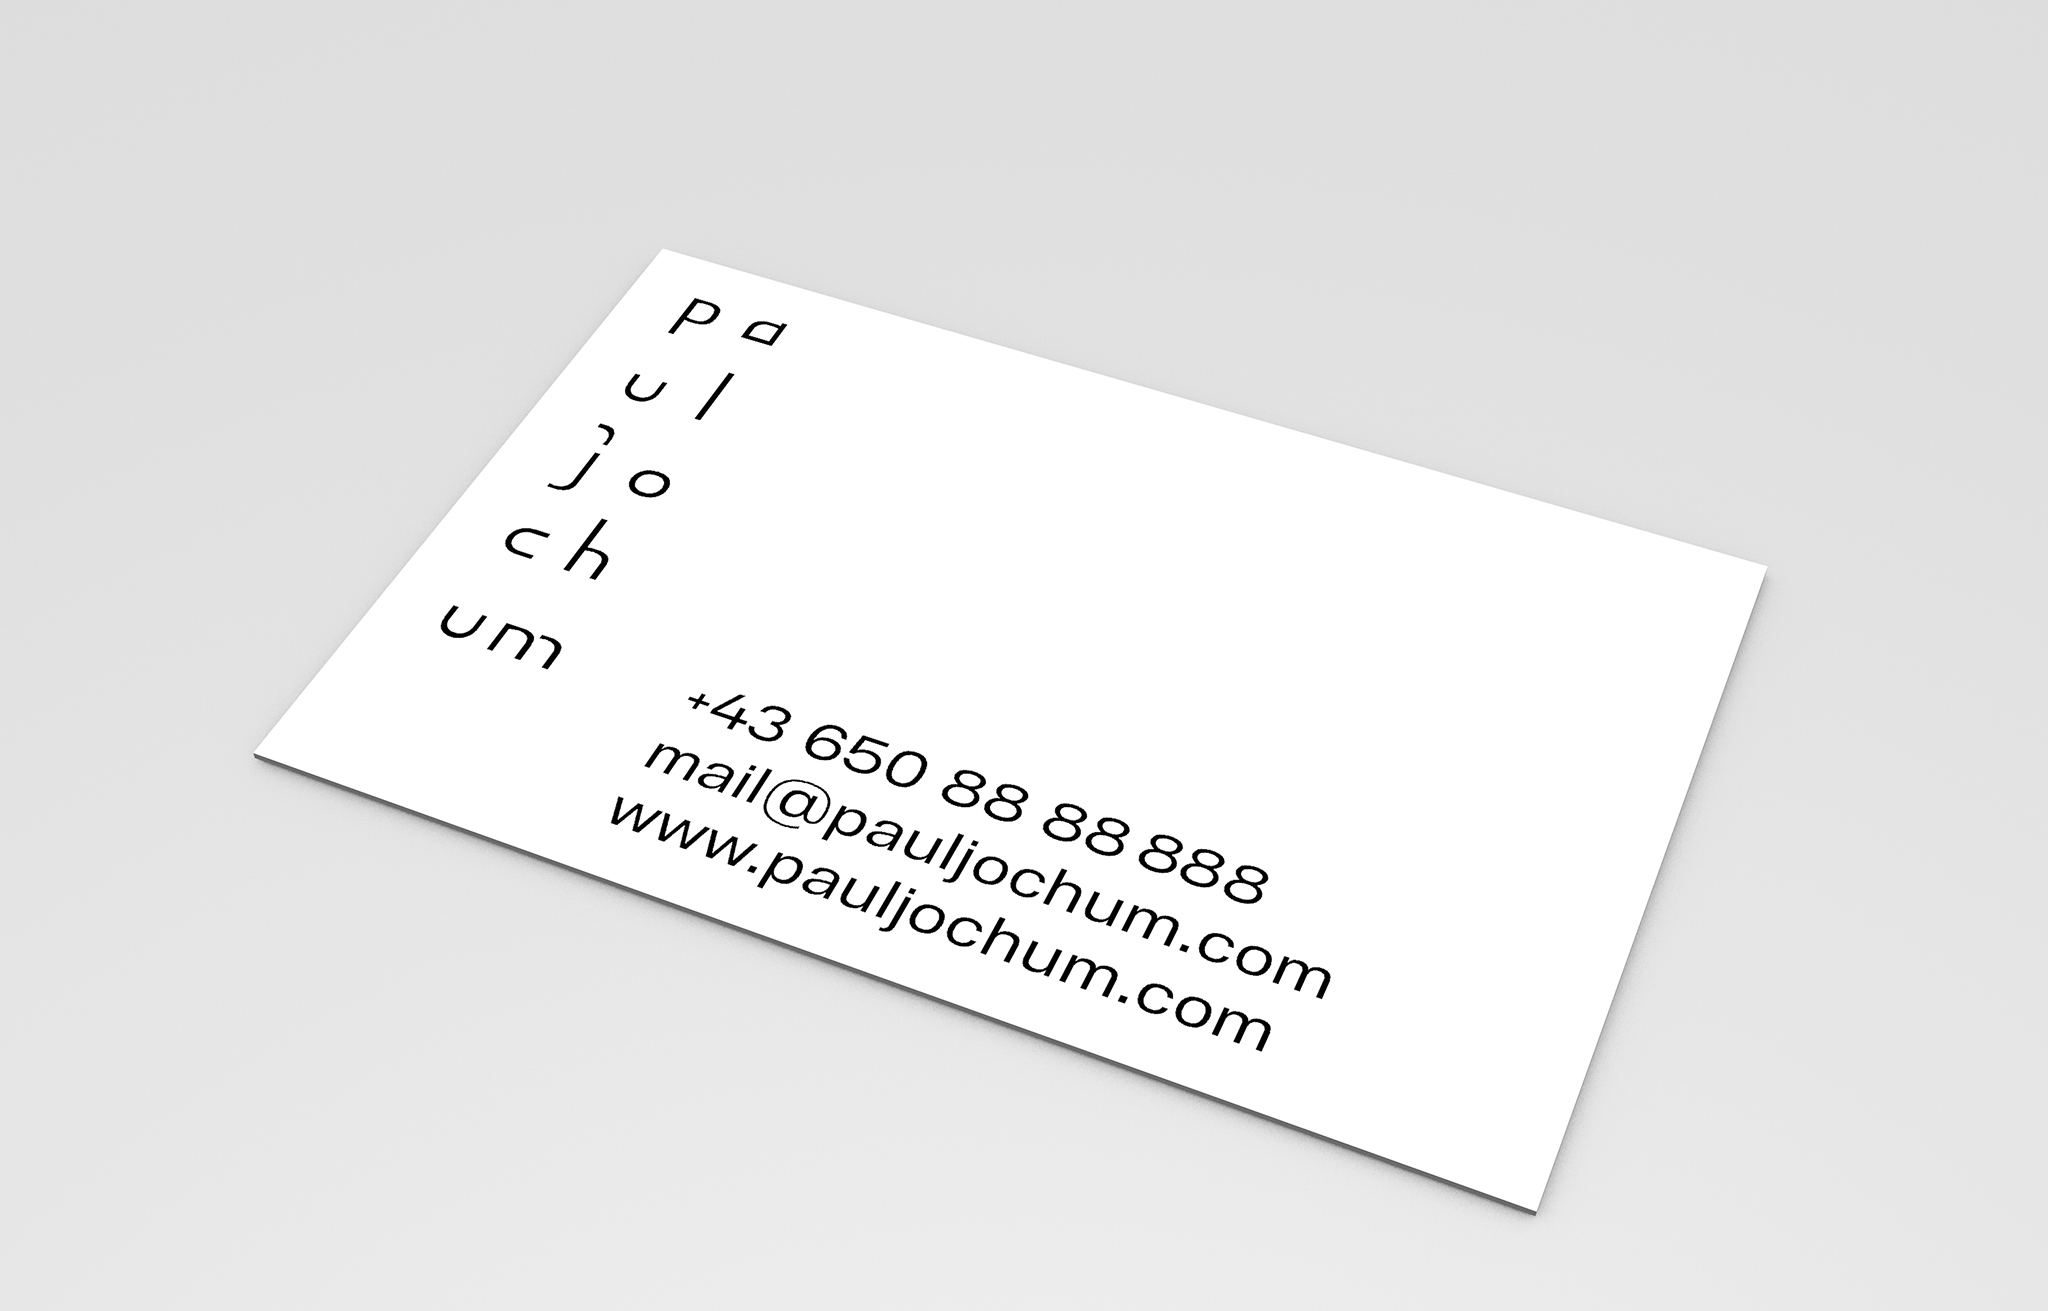 Corporate Identity Paul Jochum